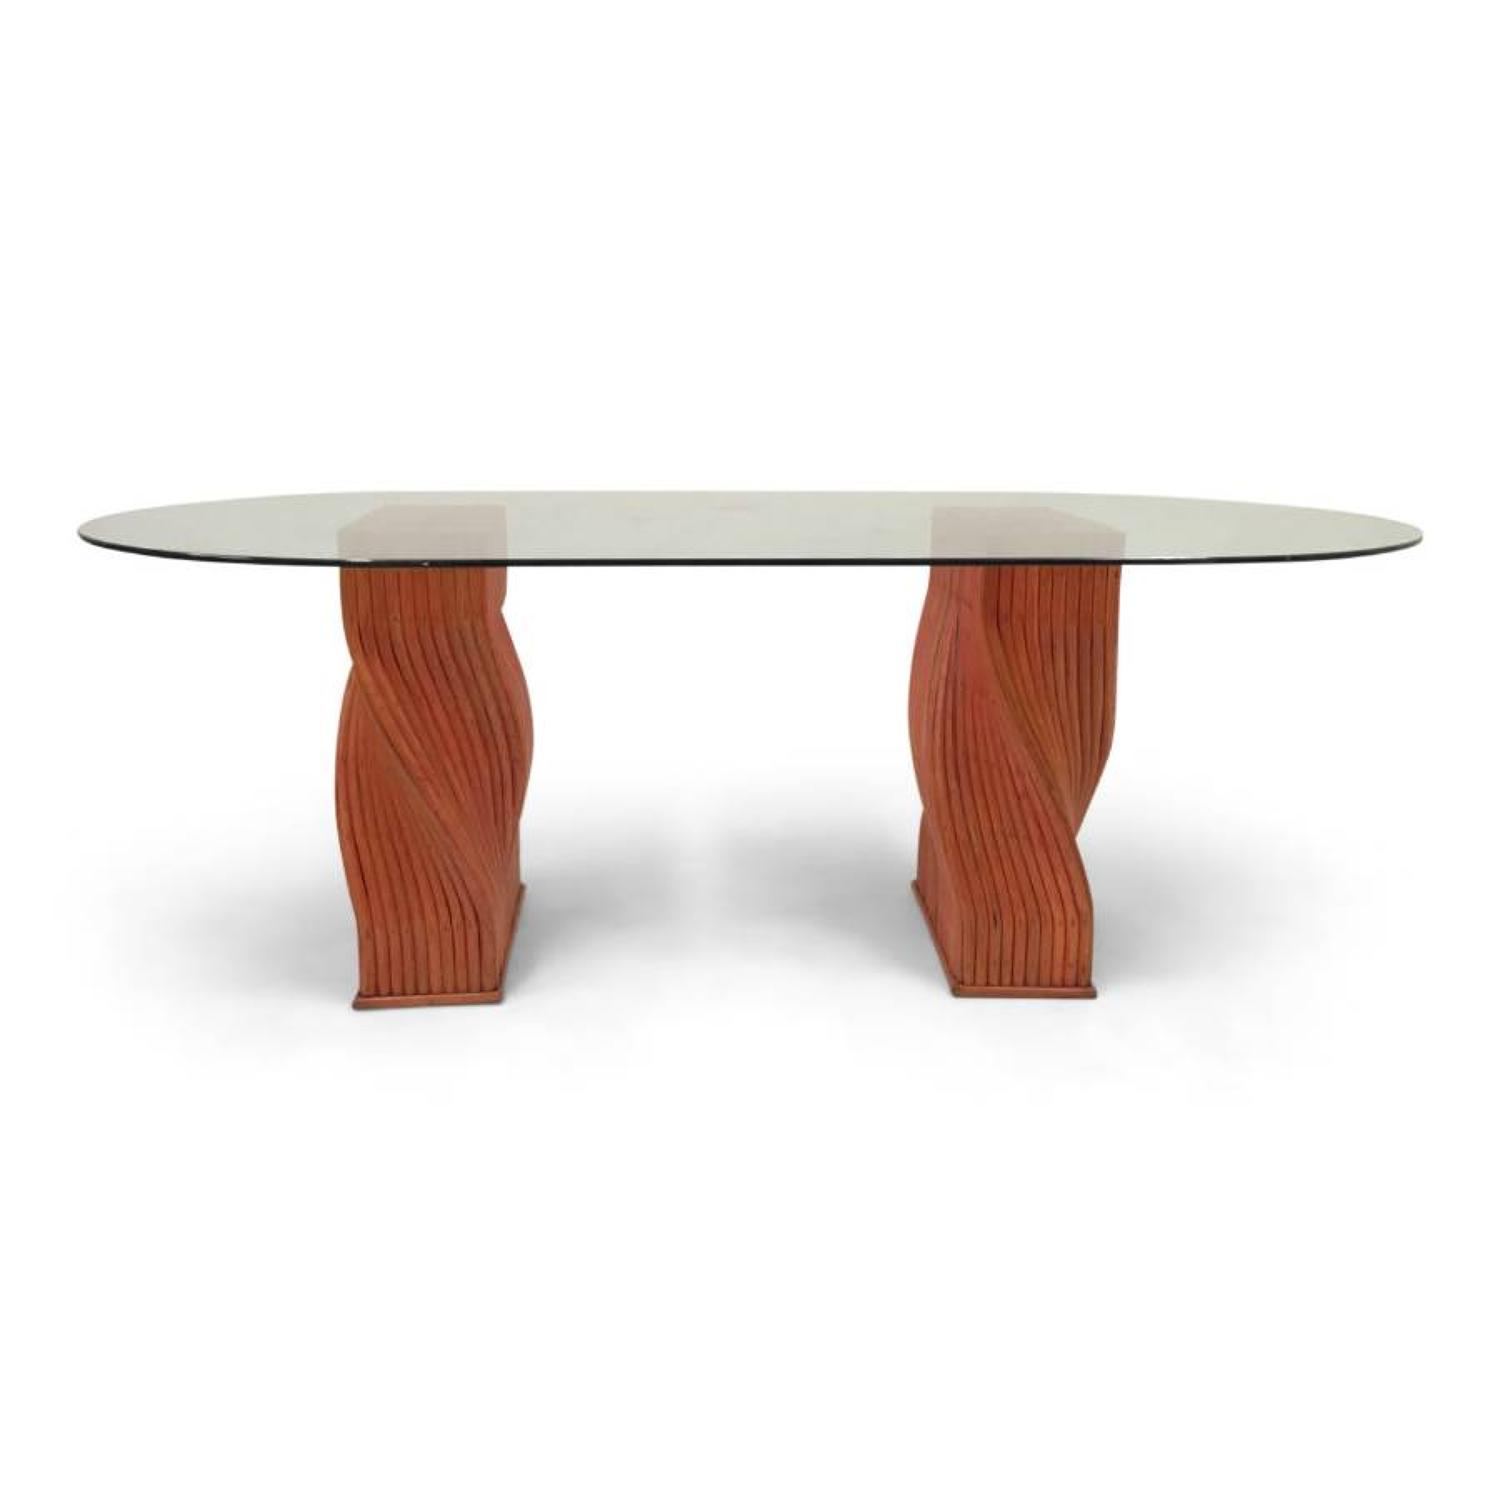 A red bamboo and glass dining table